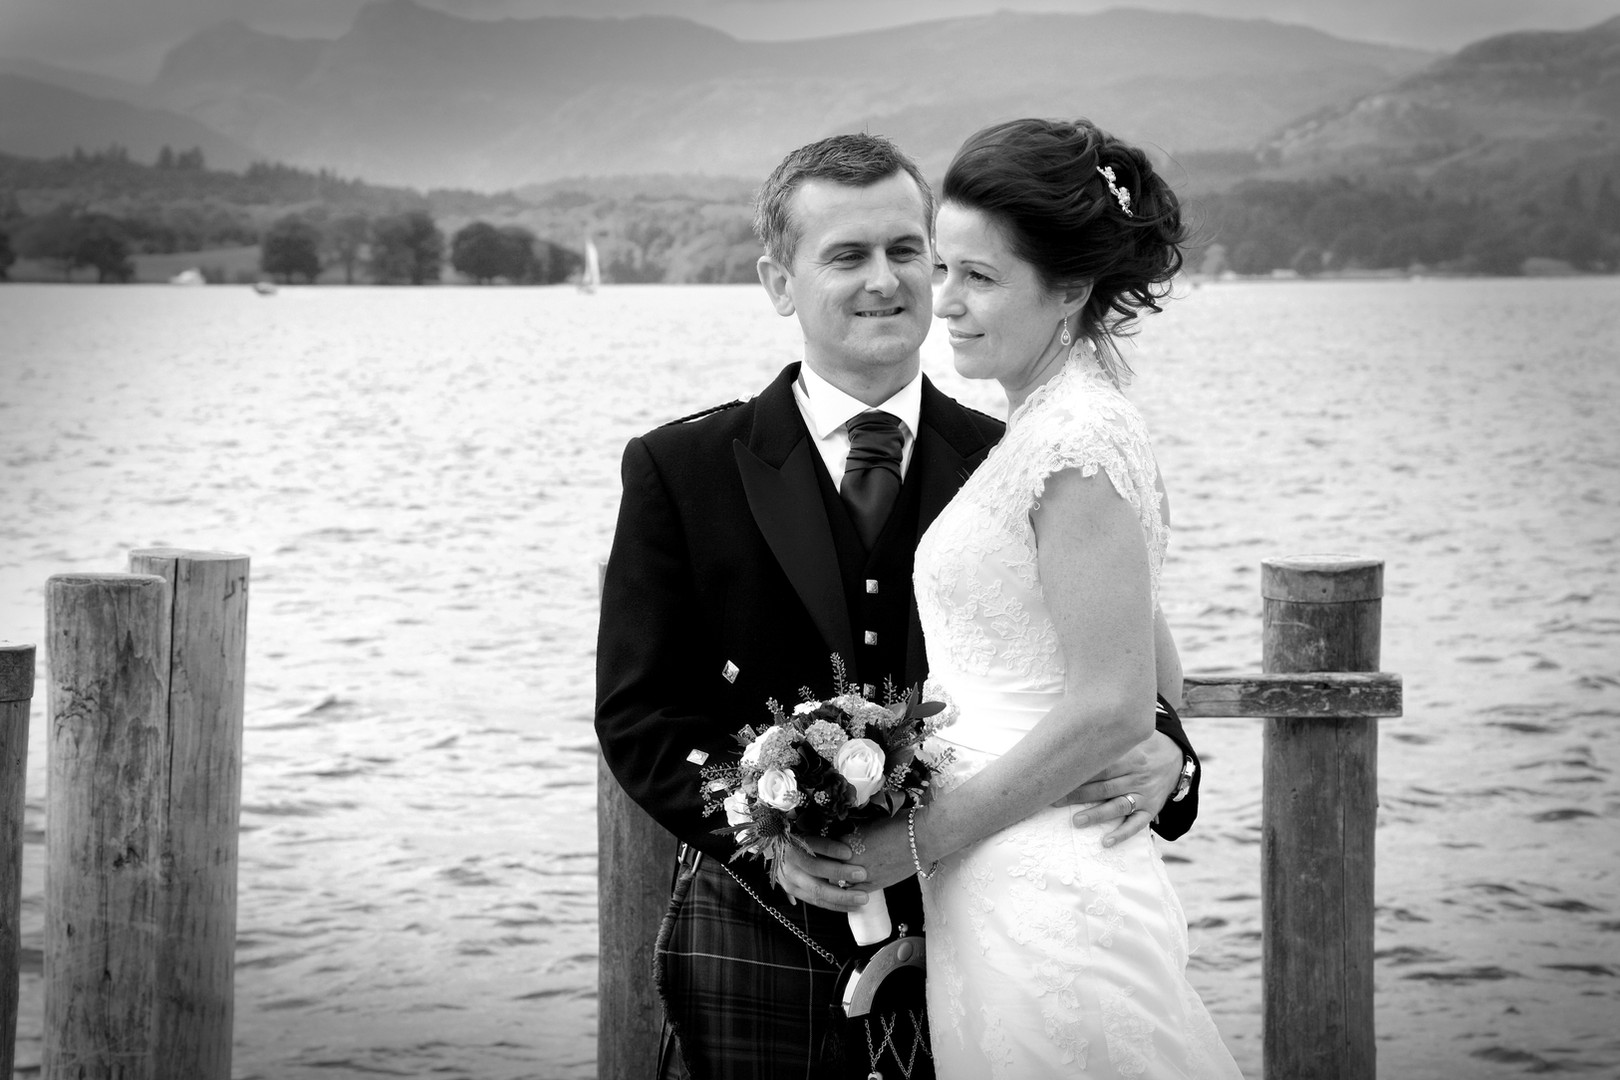 Wedding portrait in the lake district